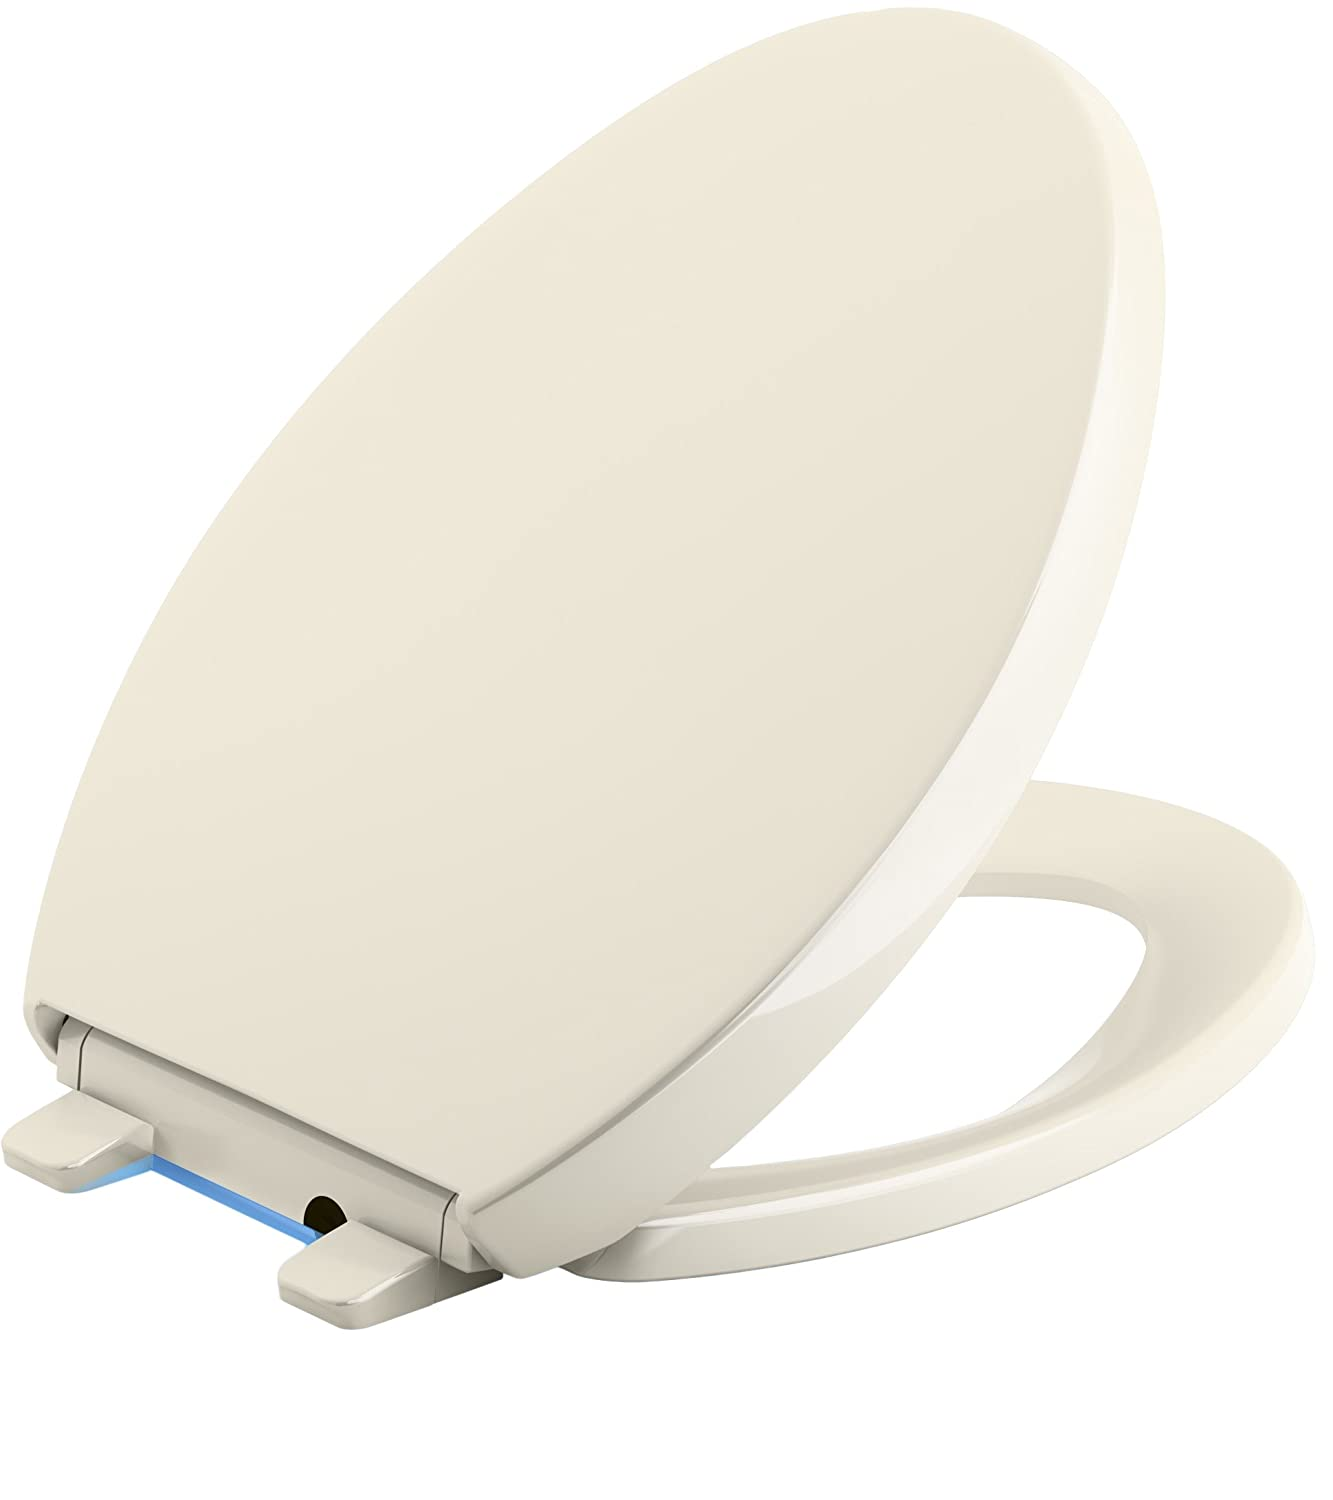 KOHLER K-5638-47 Reveal Nightlight Quiet-Close with Grip-Tight Bumpers Elongated Toilet Seat, Almond